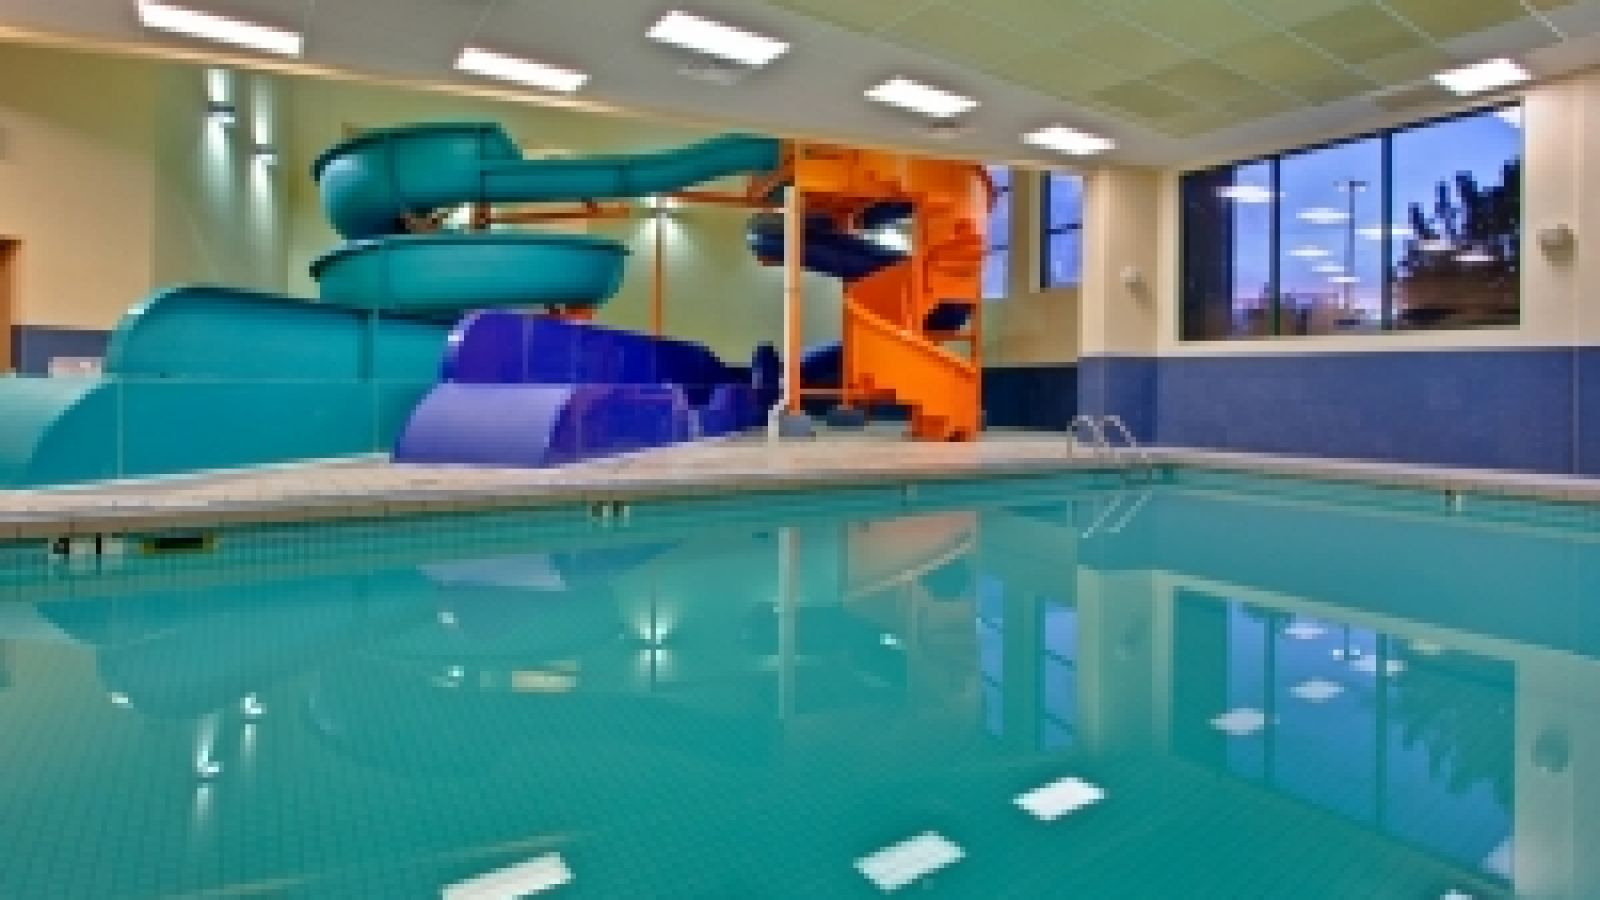 Kanata Kelowna Hotel & Conference Centre - indoor pool with waterslide